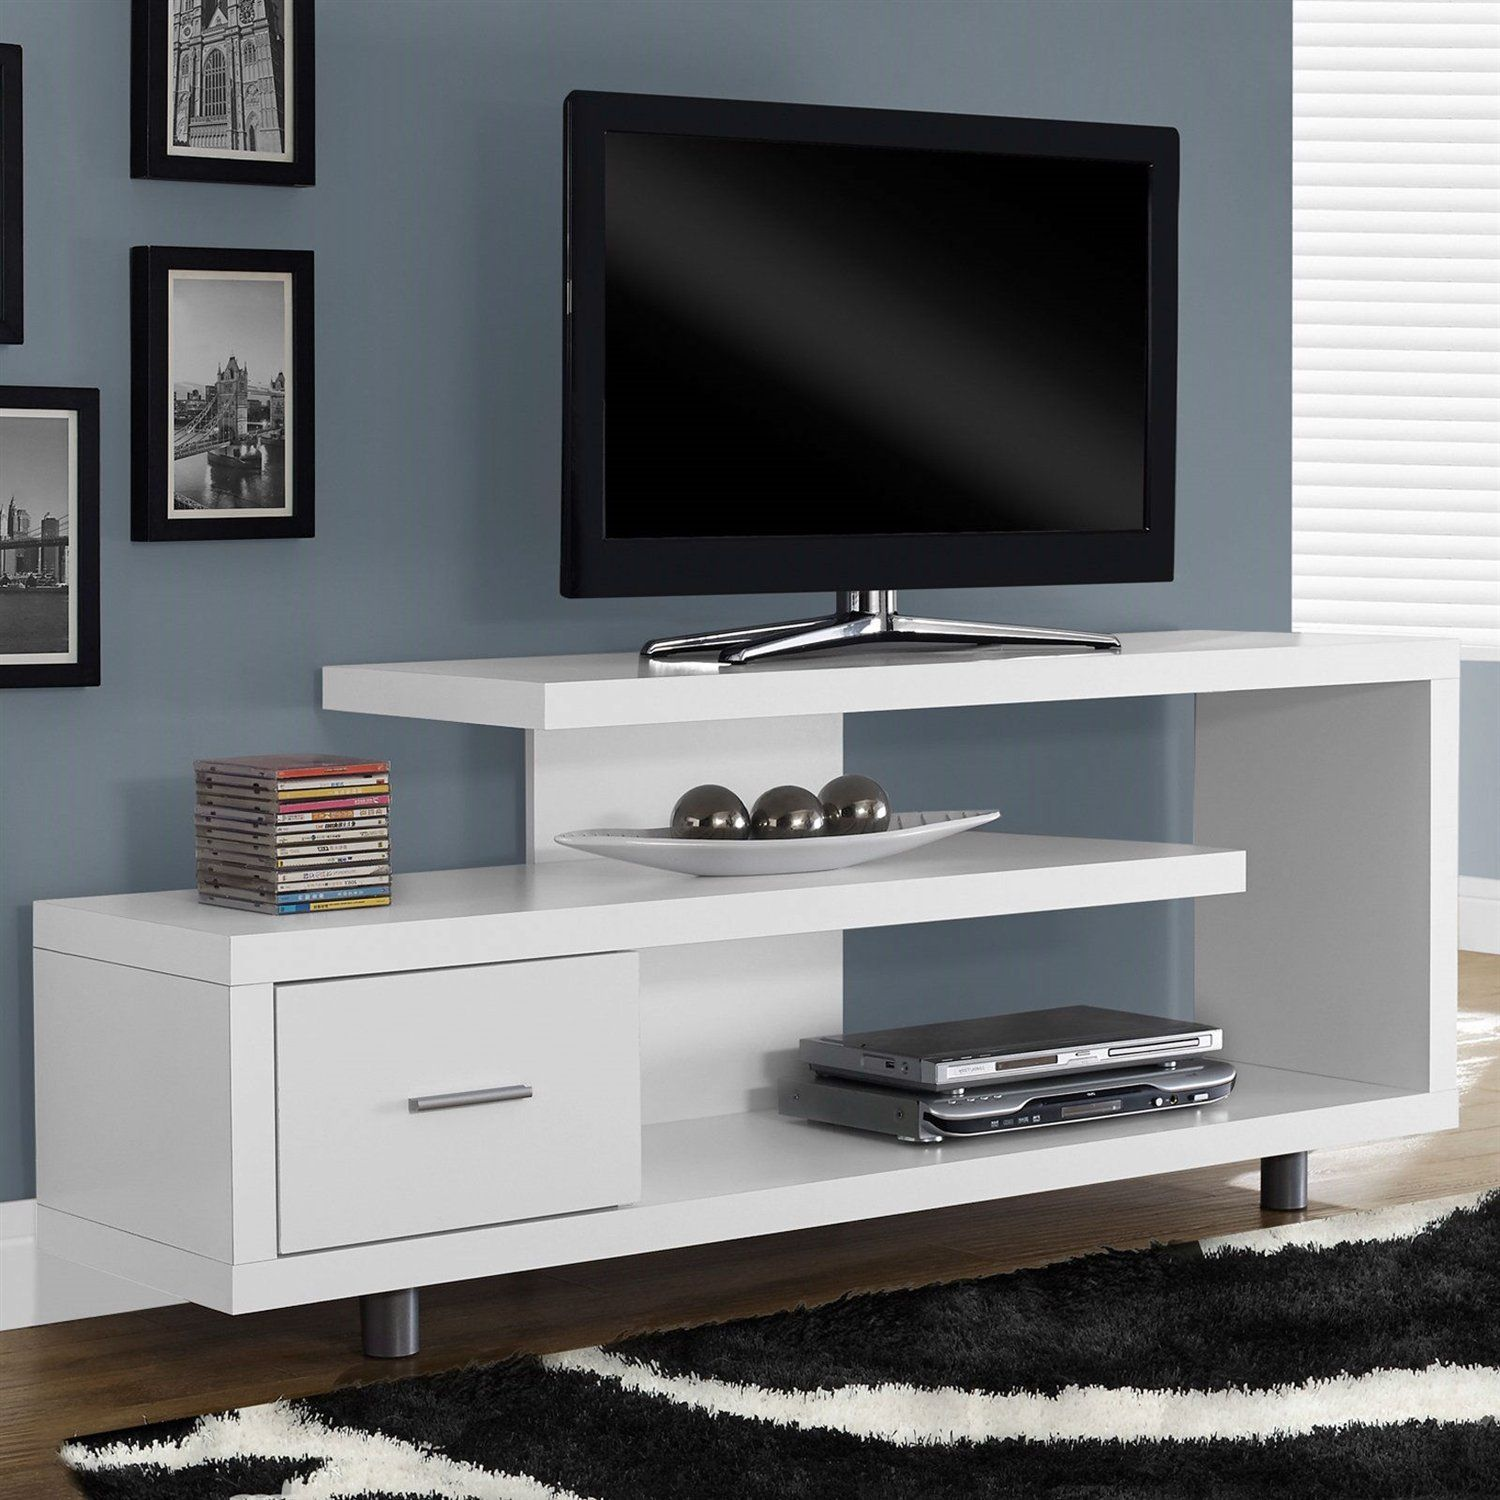 White Modern Tv Stand Fits Up To 60 Inch Flat Screen Tv In 2020